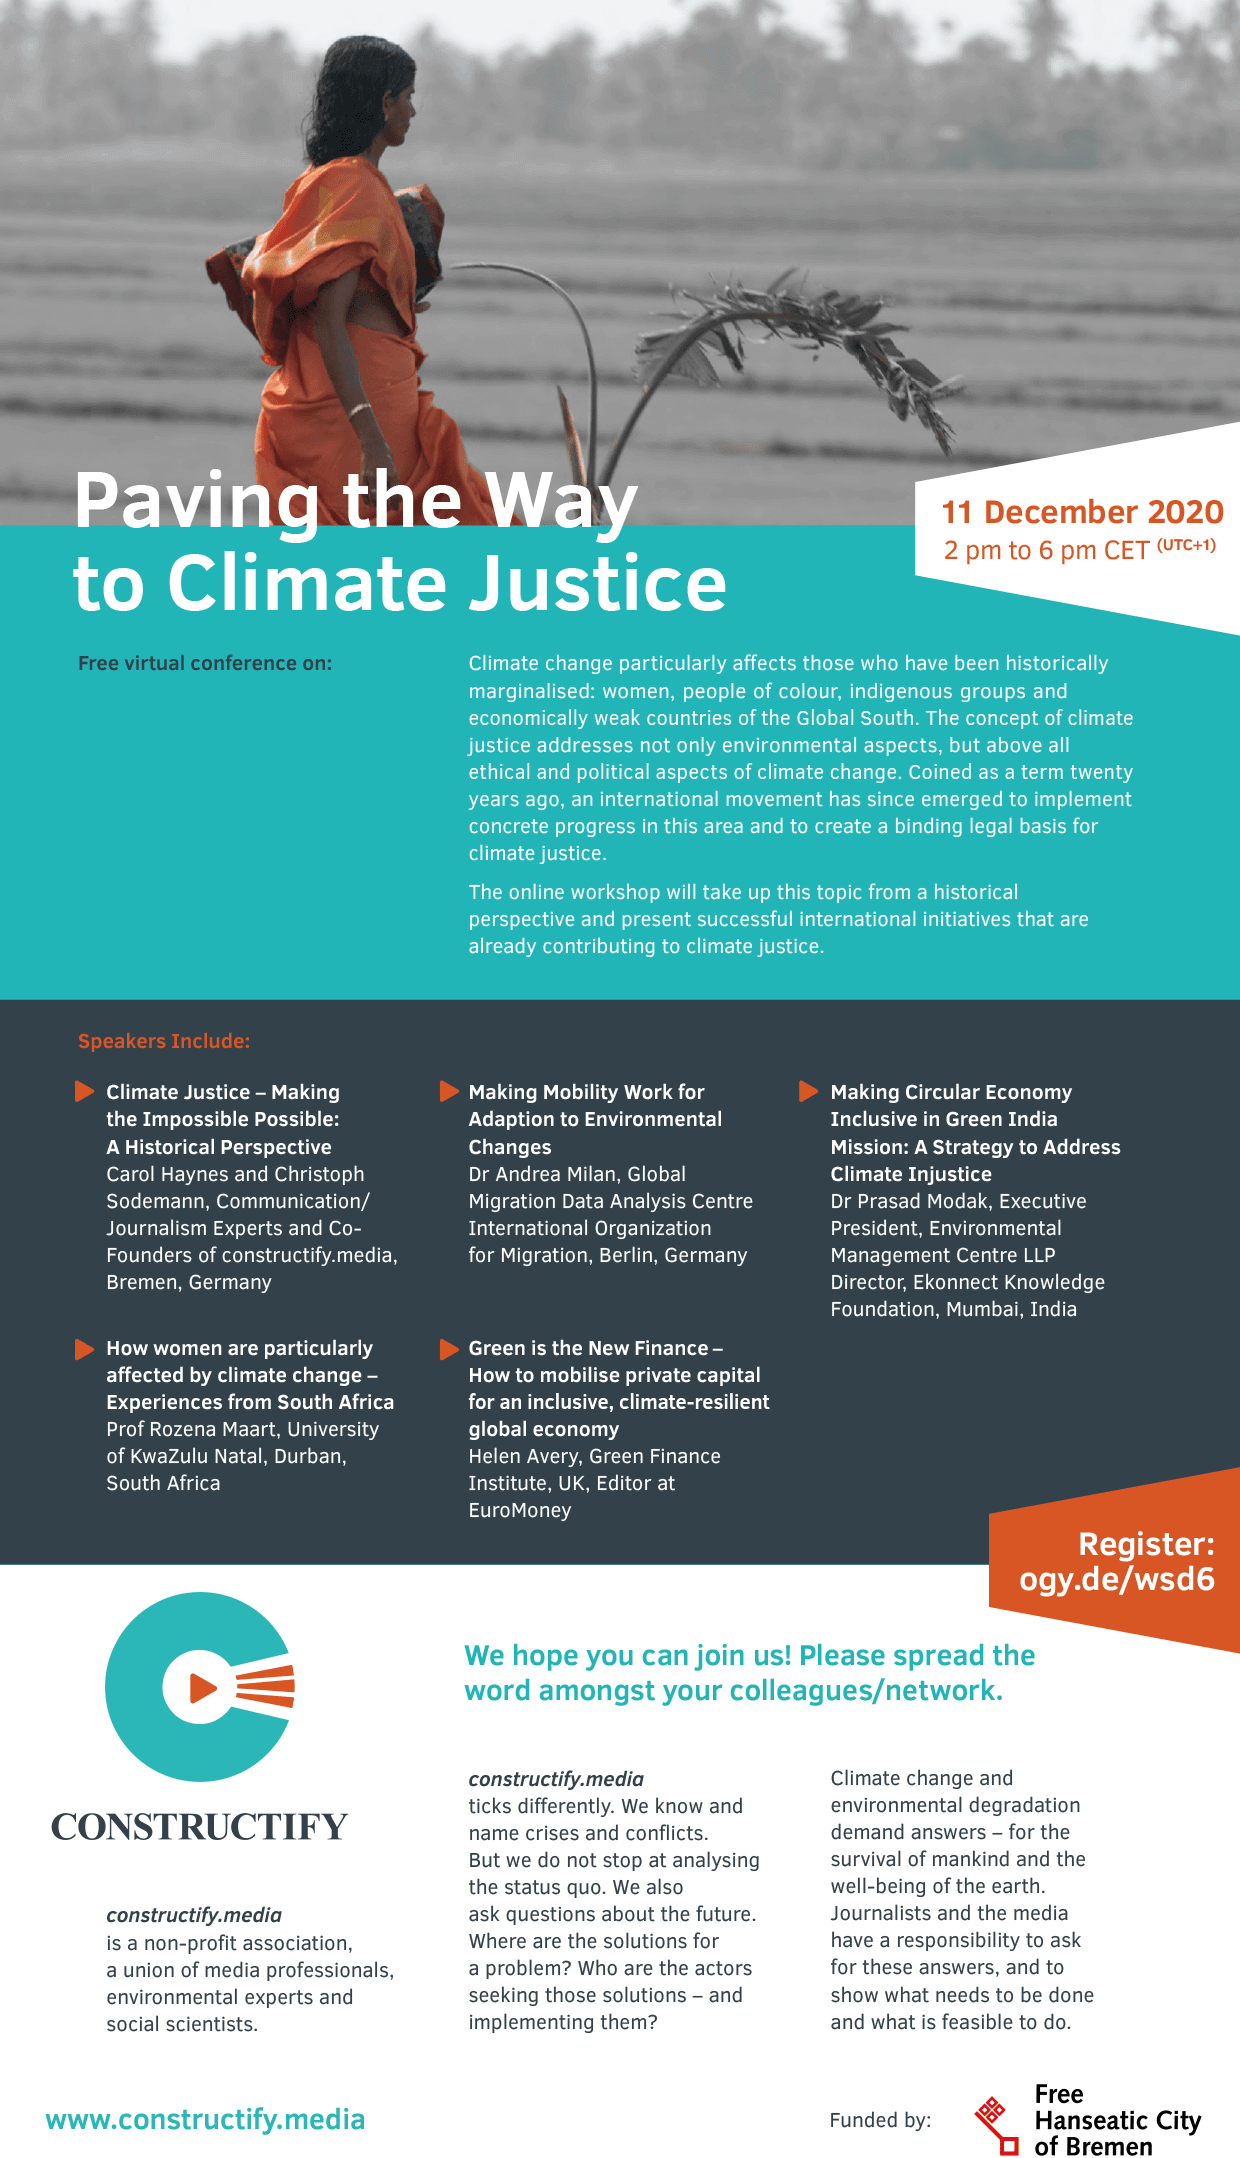 Workshop Invitation: Paving the Way to Climate Justice